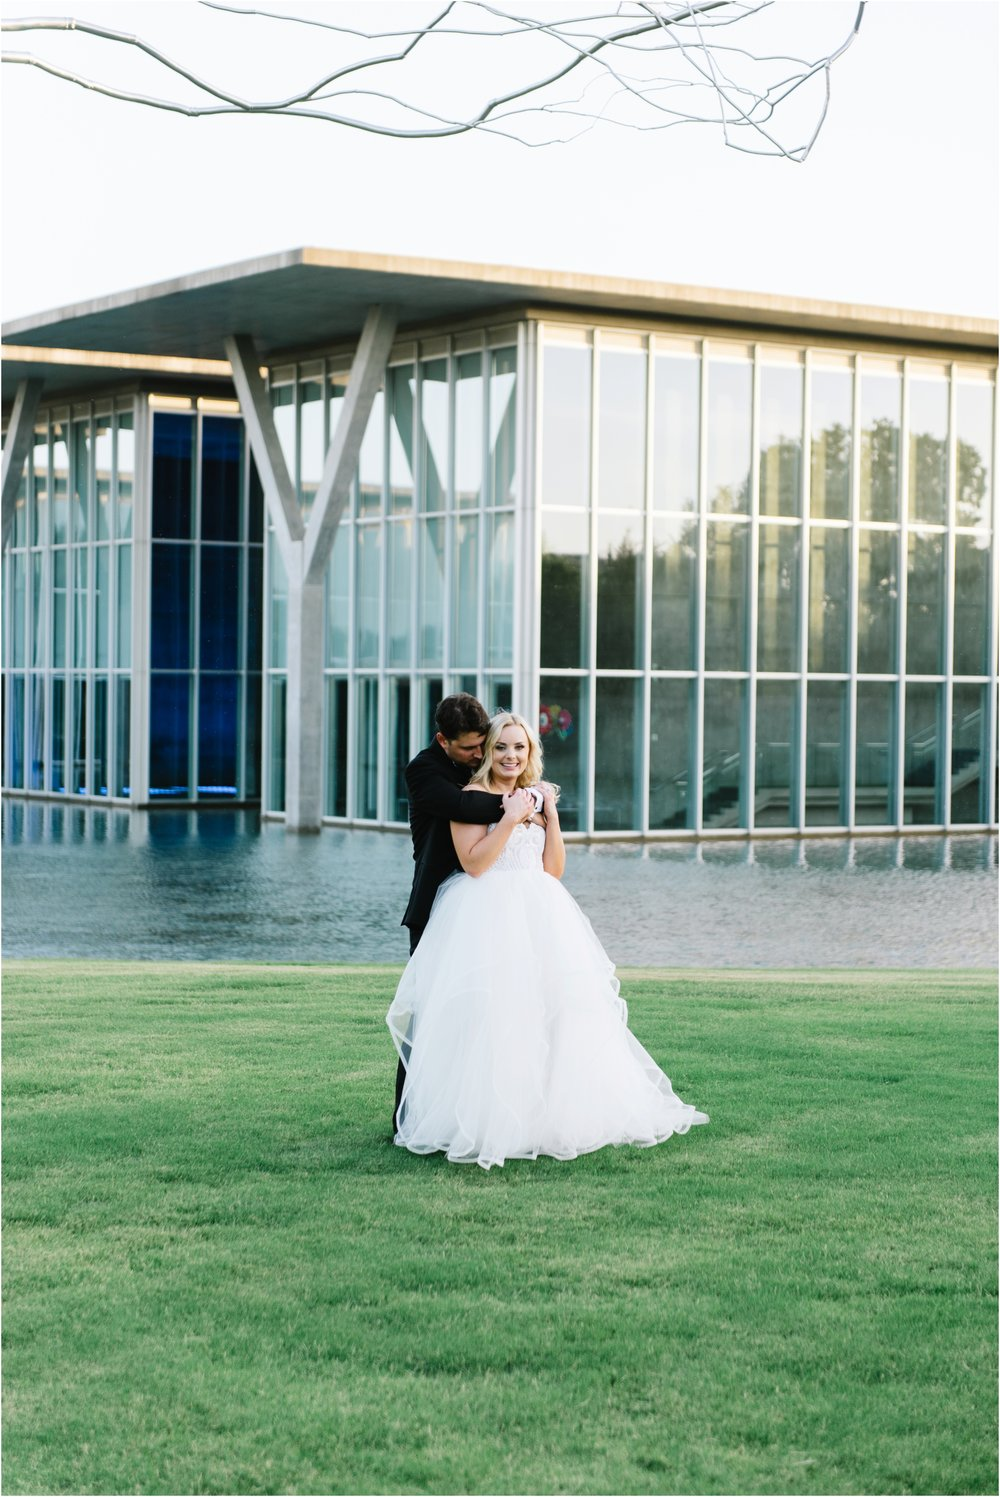 dallasweddingphotographer_fortworthweddingphotographer_texasweddingphotographer_mattandjulieweddings_0028.jpg